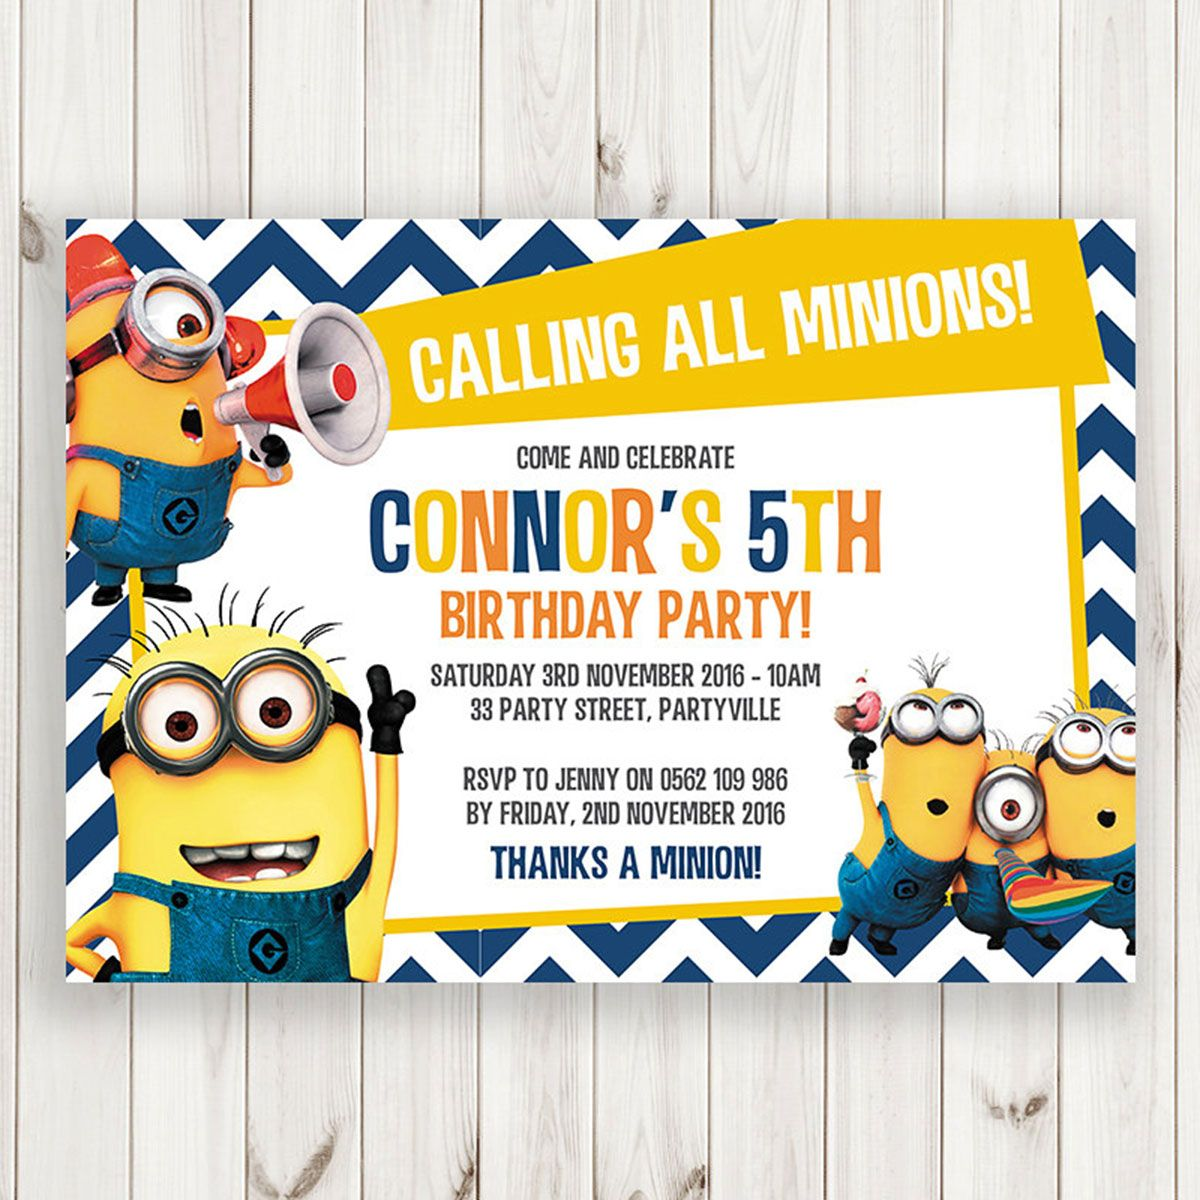 Minions Invitation Minion Birthday Invitations Minions Party - Birthday invitation template minions